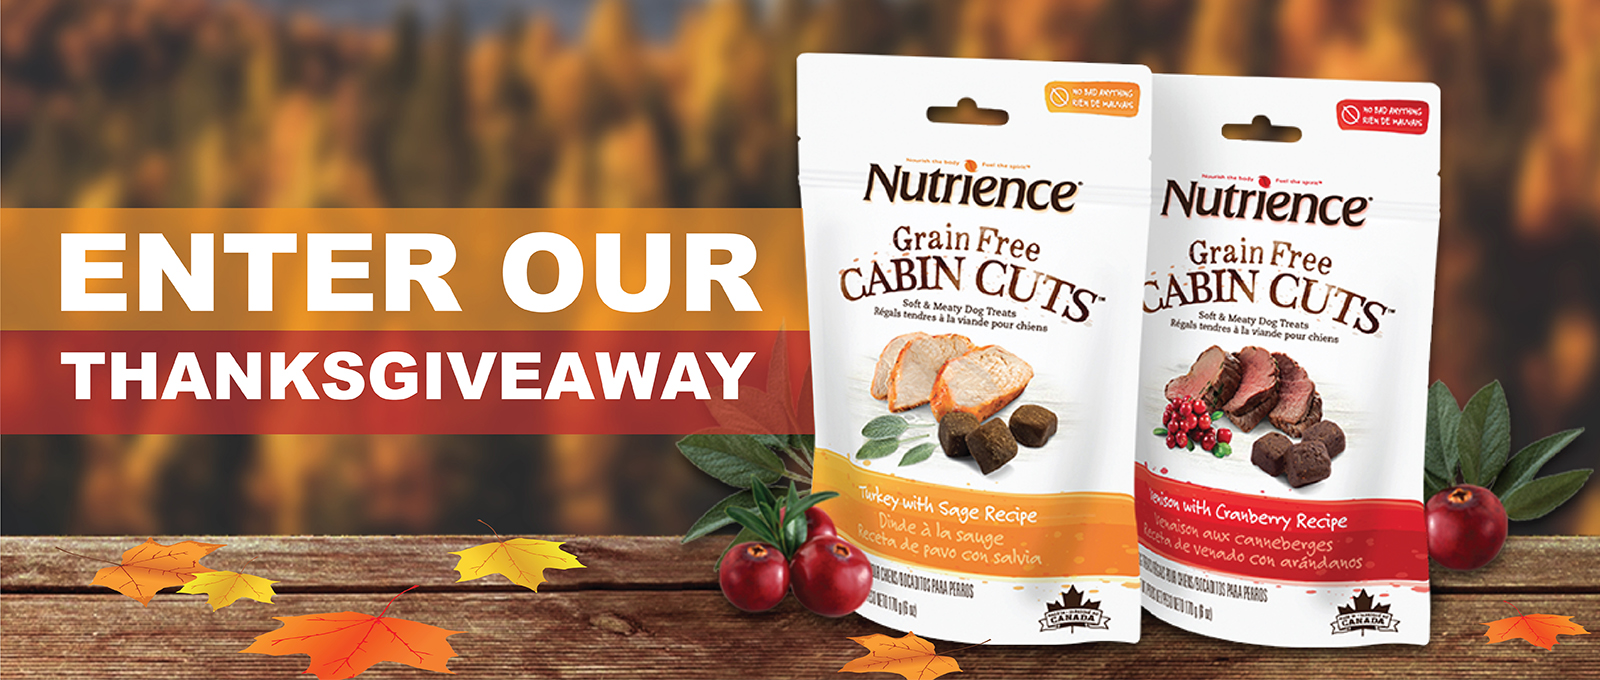 Thanksgiveaway Nutrience